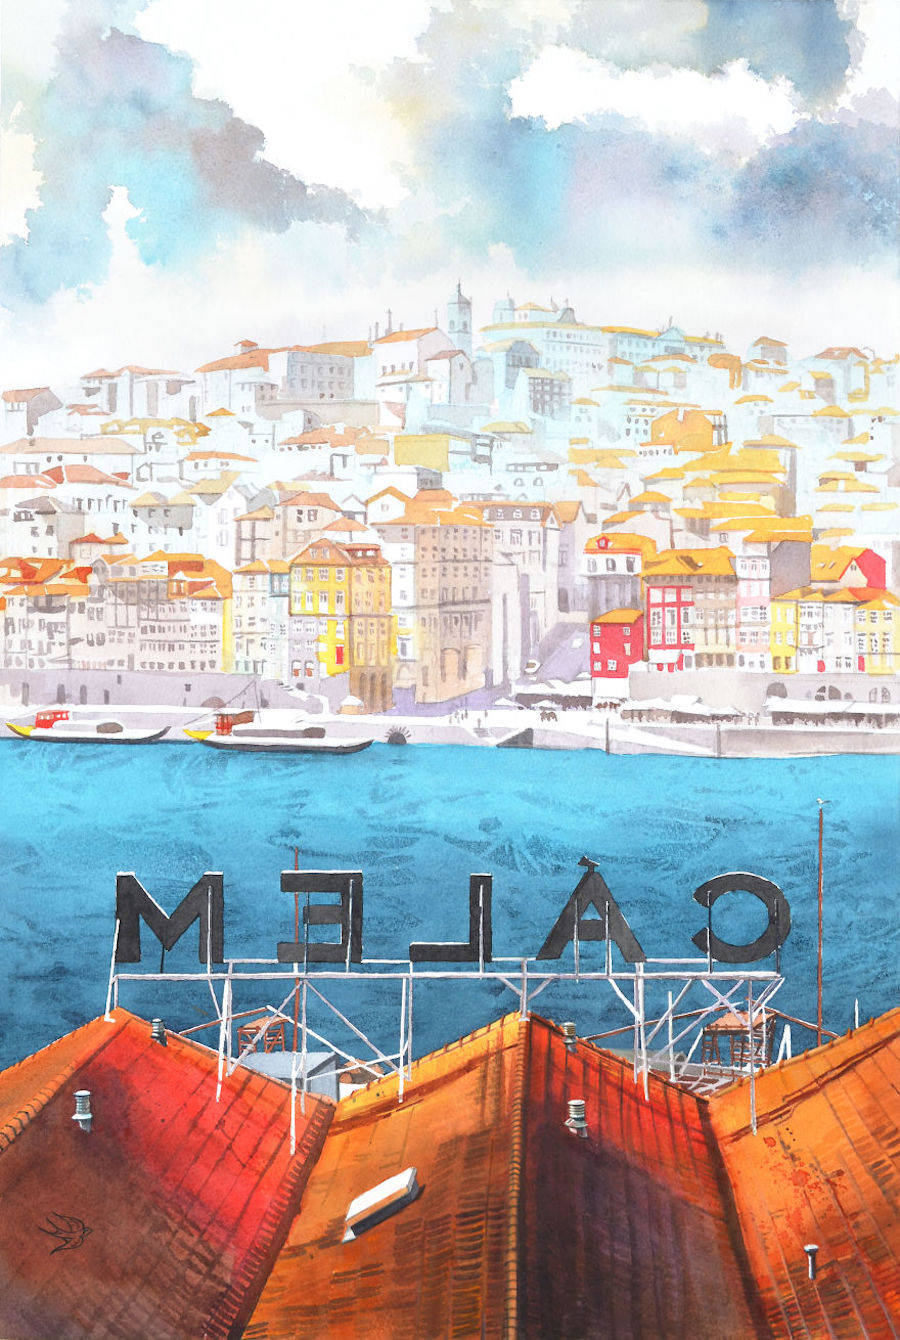 Stunning Watercolors of Portugal